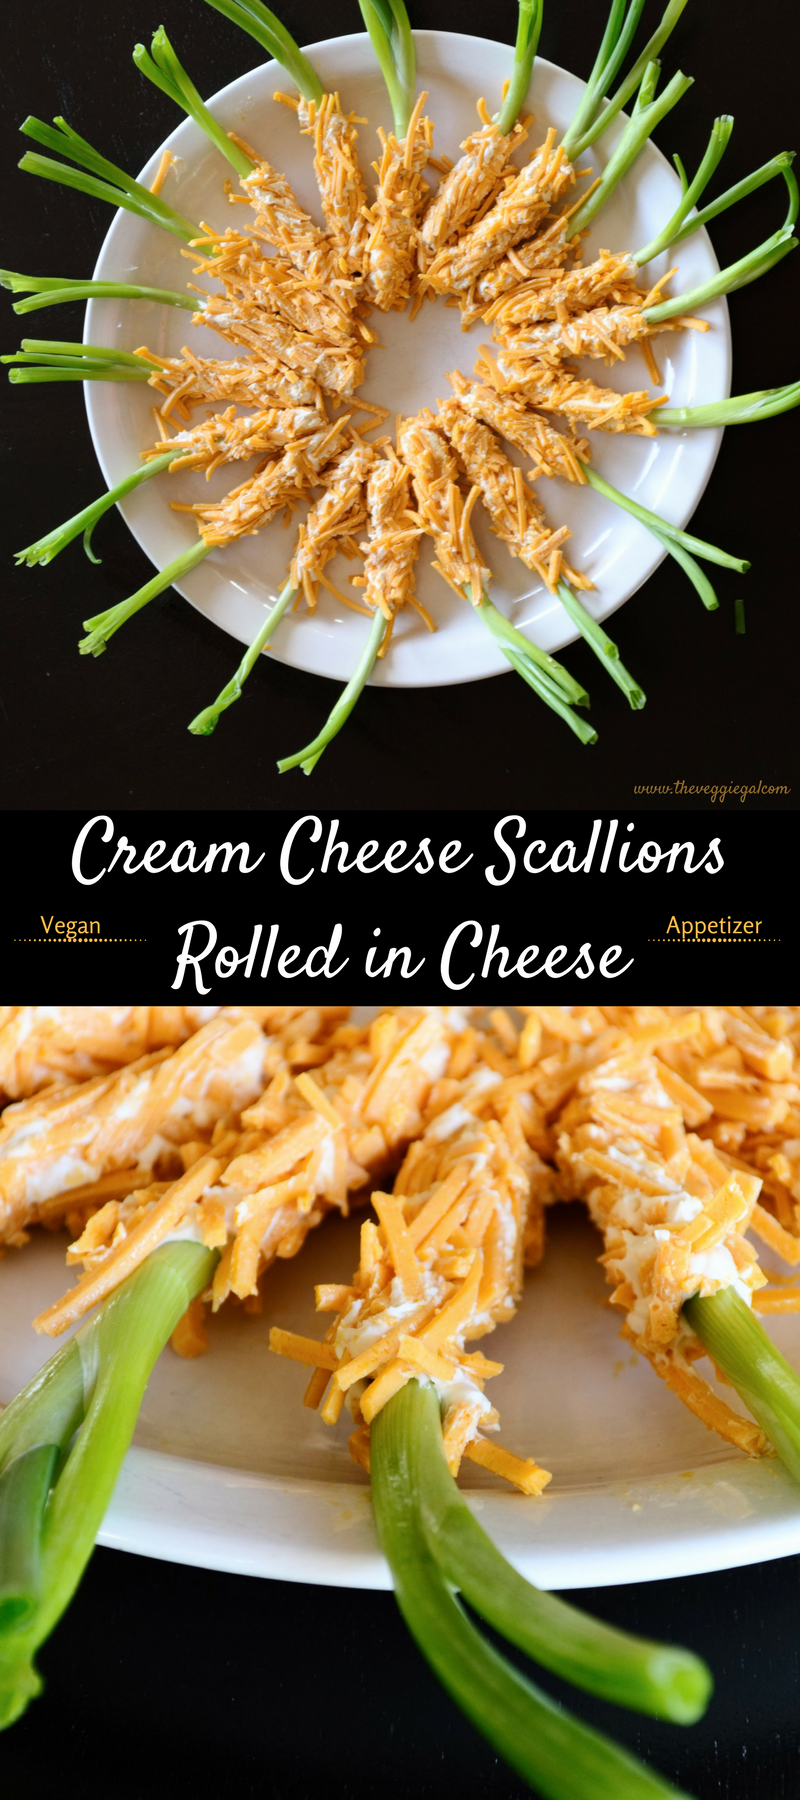 Vegan, Cream Cheese Scallions Rolled in Cheese, green onions, appetizers